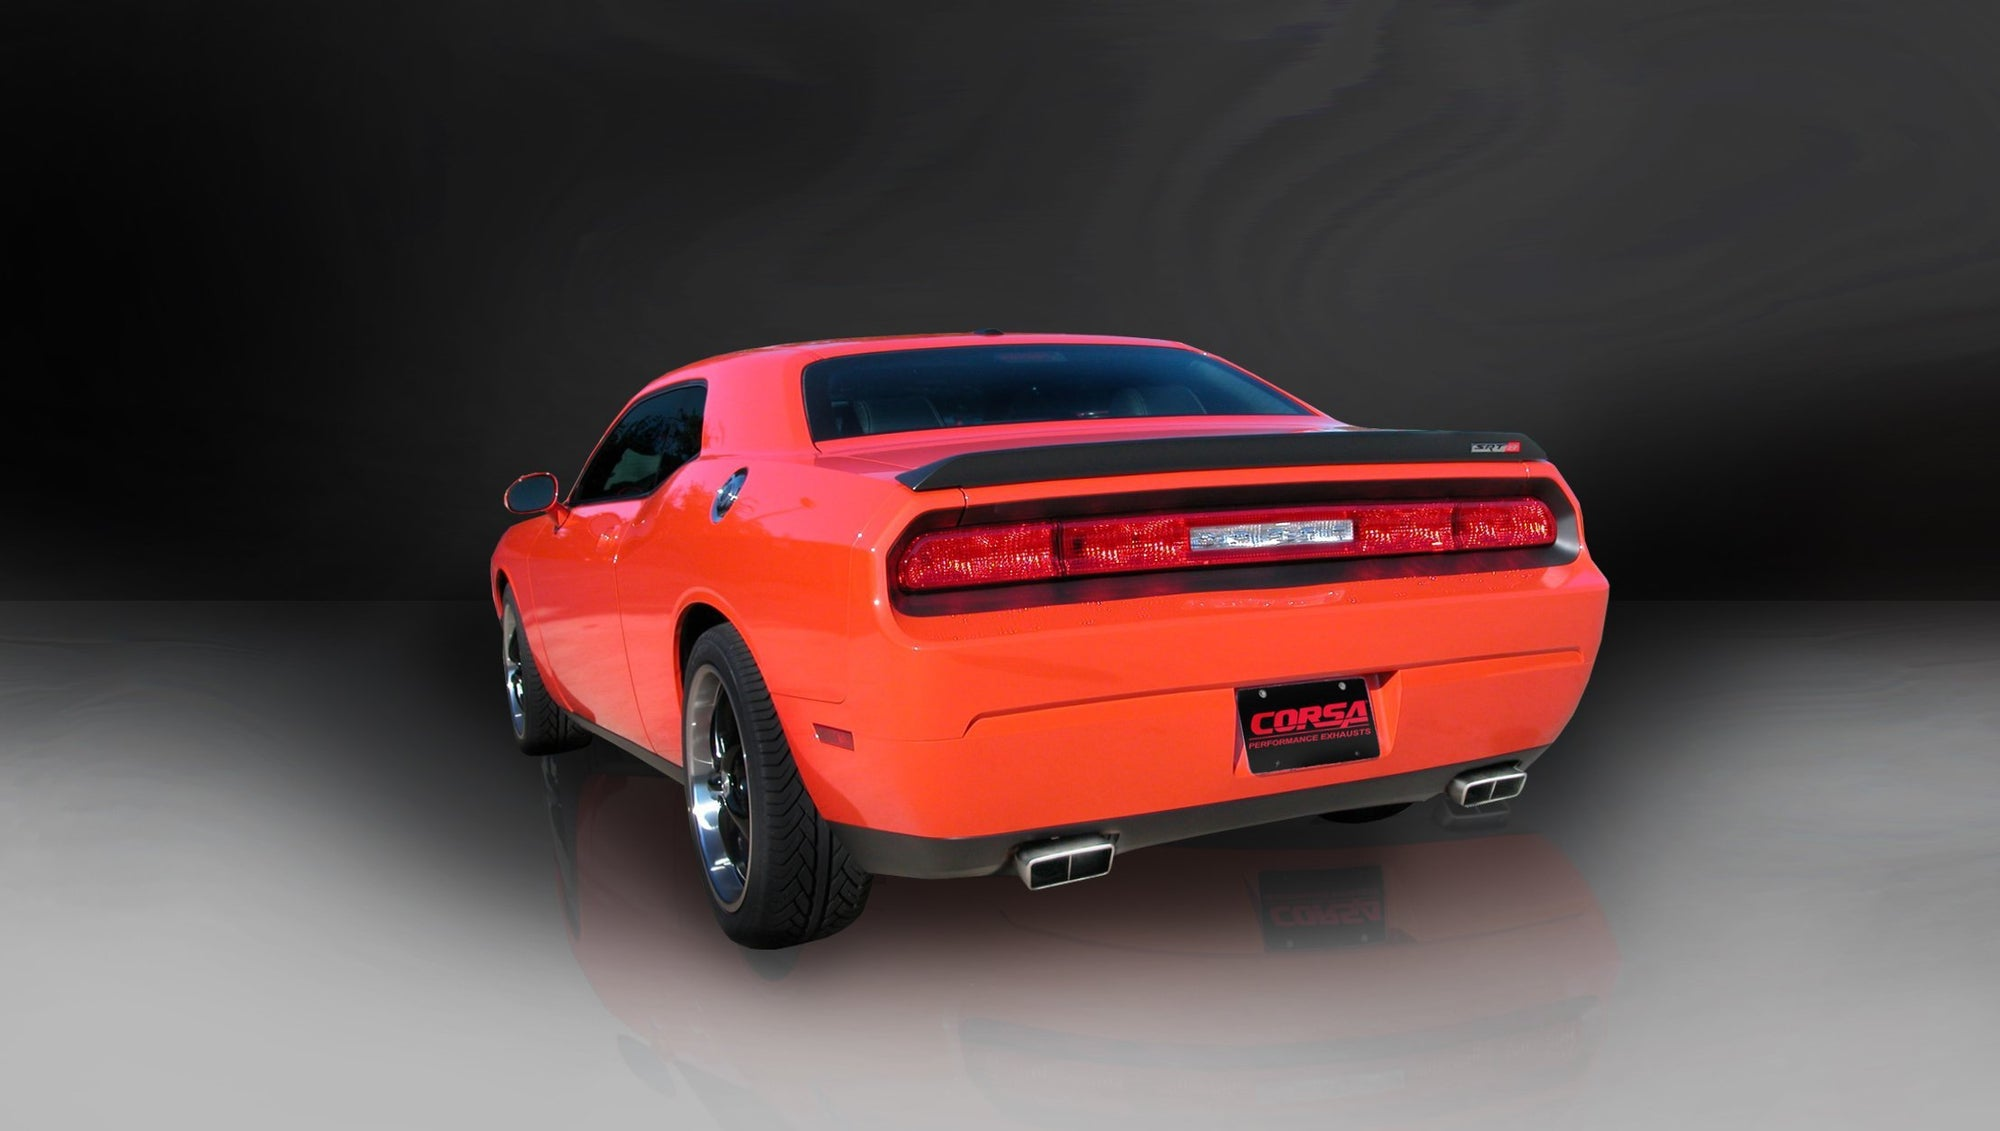 "CORSA PERFORMANCE Cat-Back Exhaust Polished / Xtreme / Dual Rear - GTX 2008-2010 Dodge Challenger SRT, 6.1L V8, 2.75"" Dual Rear Exit Cat-Back Exhaust System with GTX2 Tips (14438) Xtreme Sound Level"